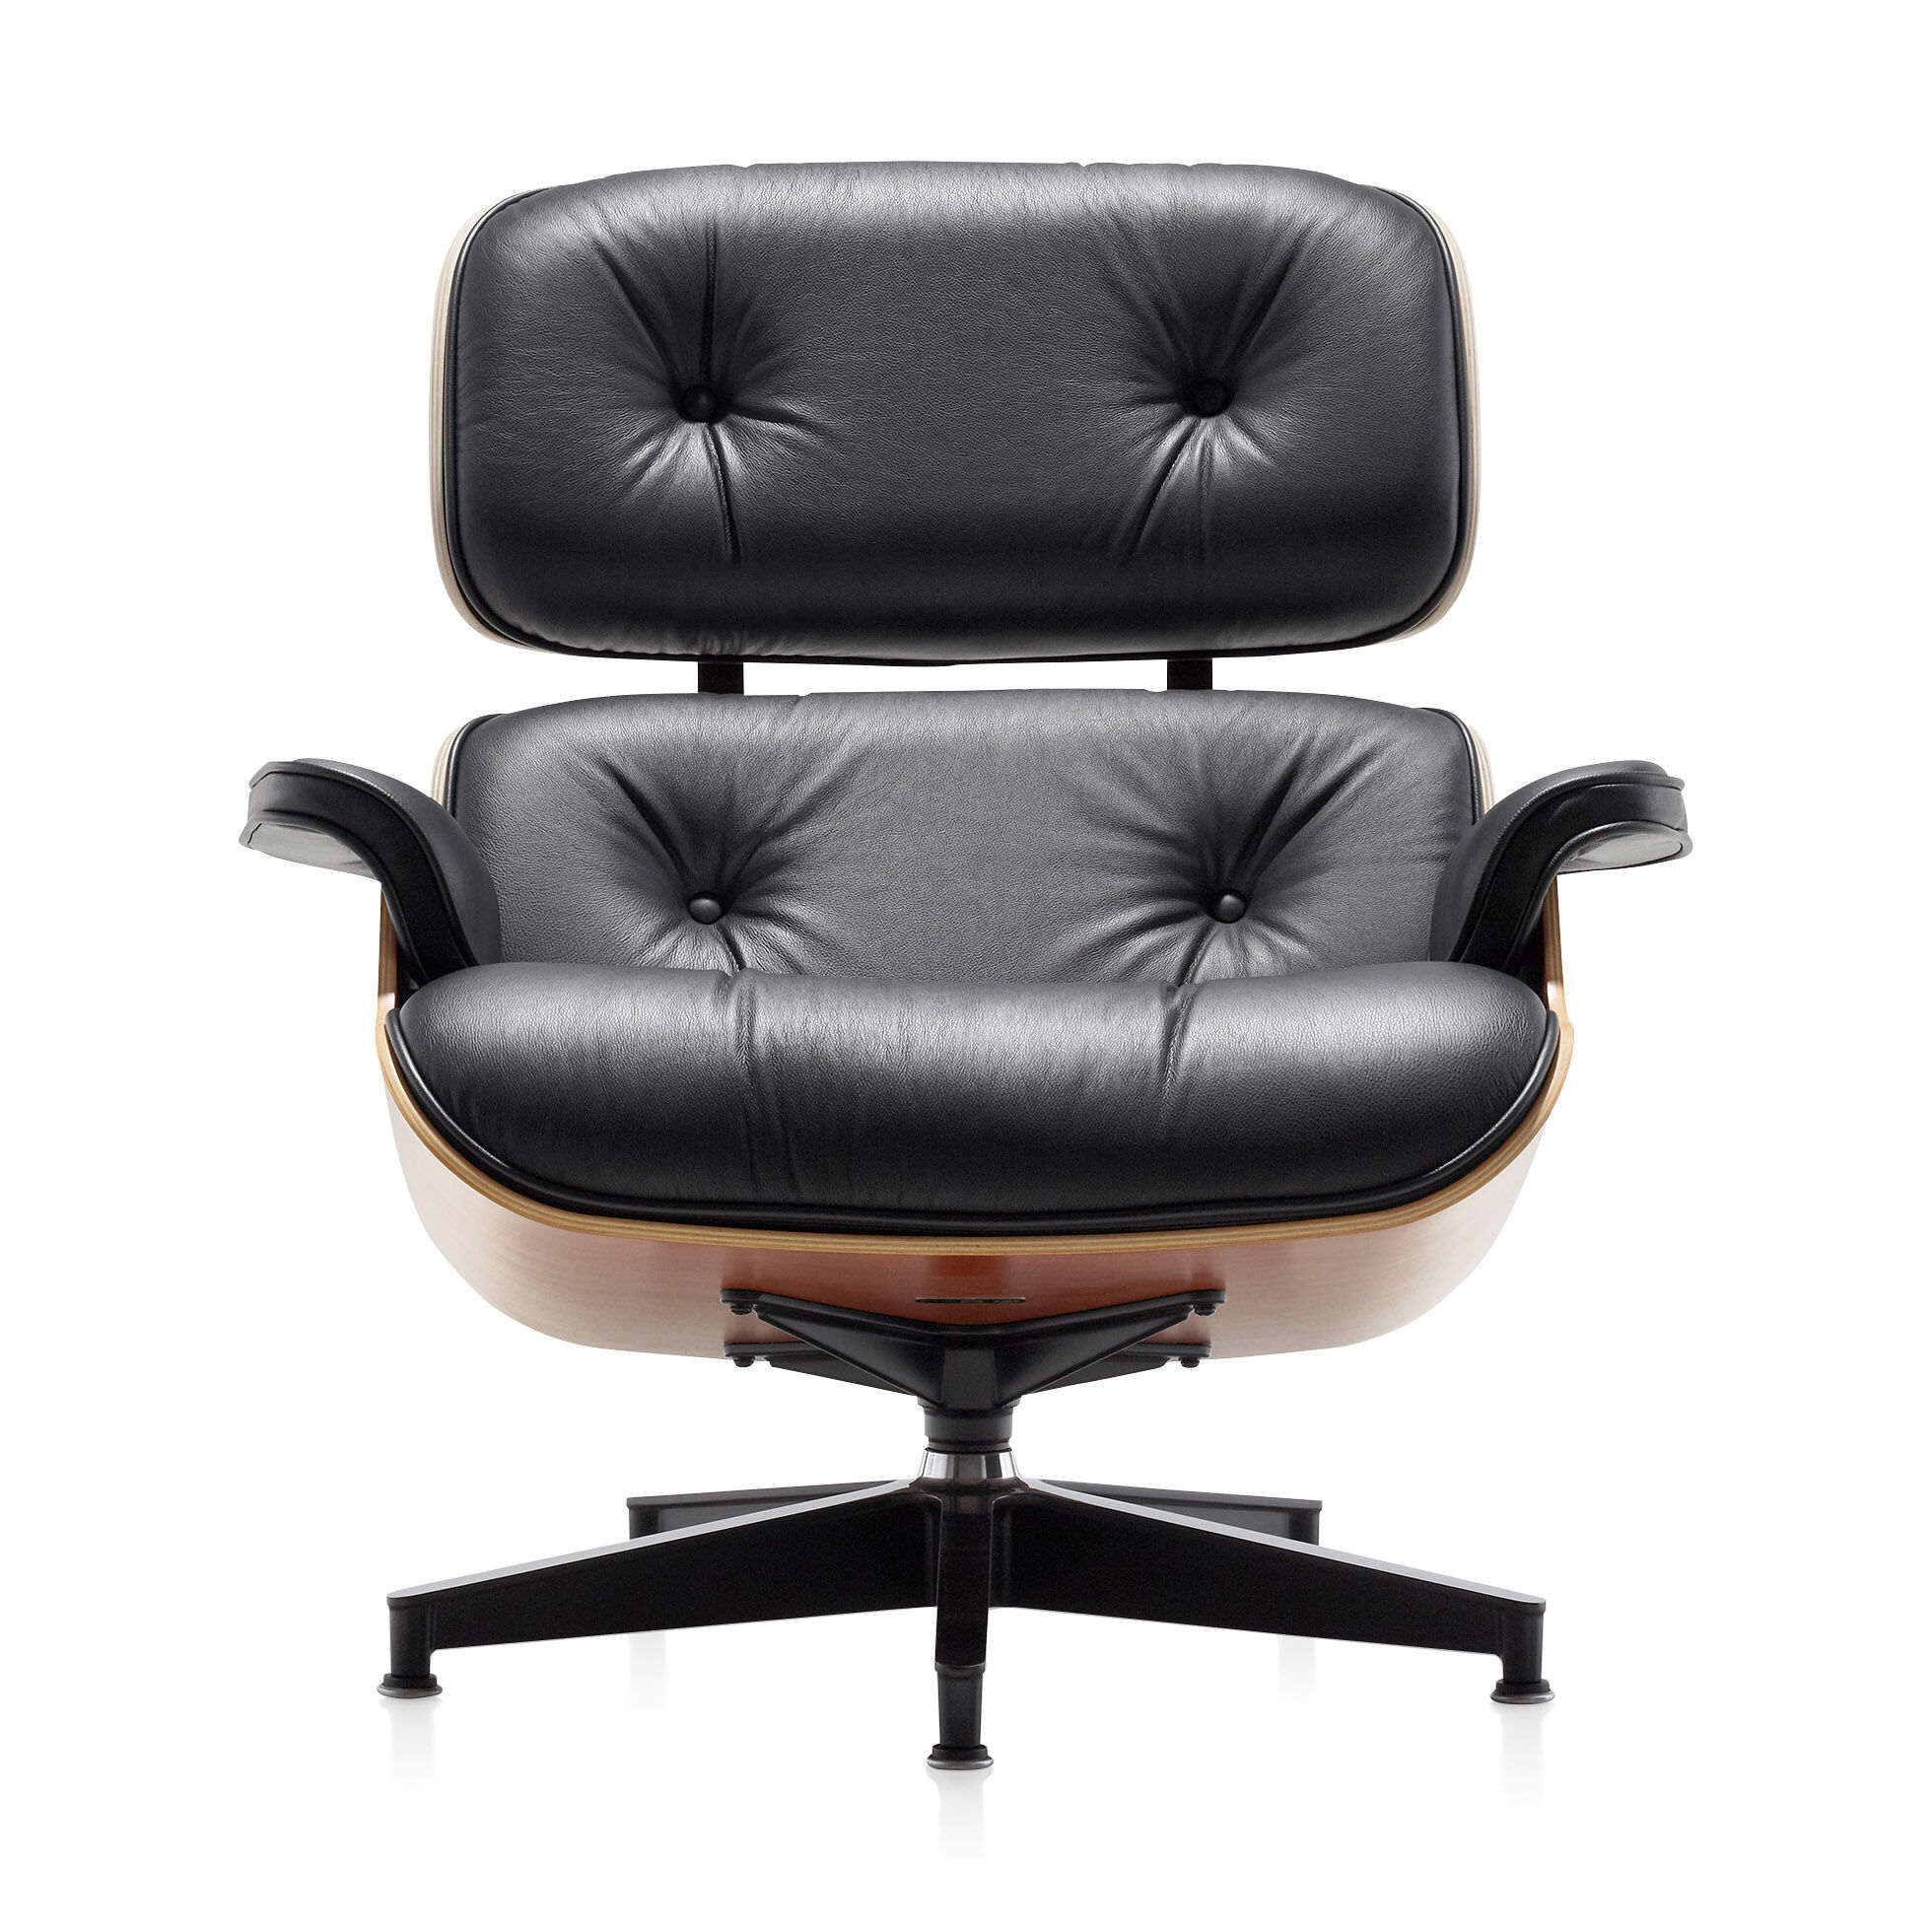 Etonnant Eames Lounge Chair With Ottoman In Color Black/Cherry